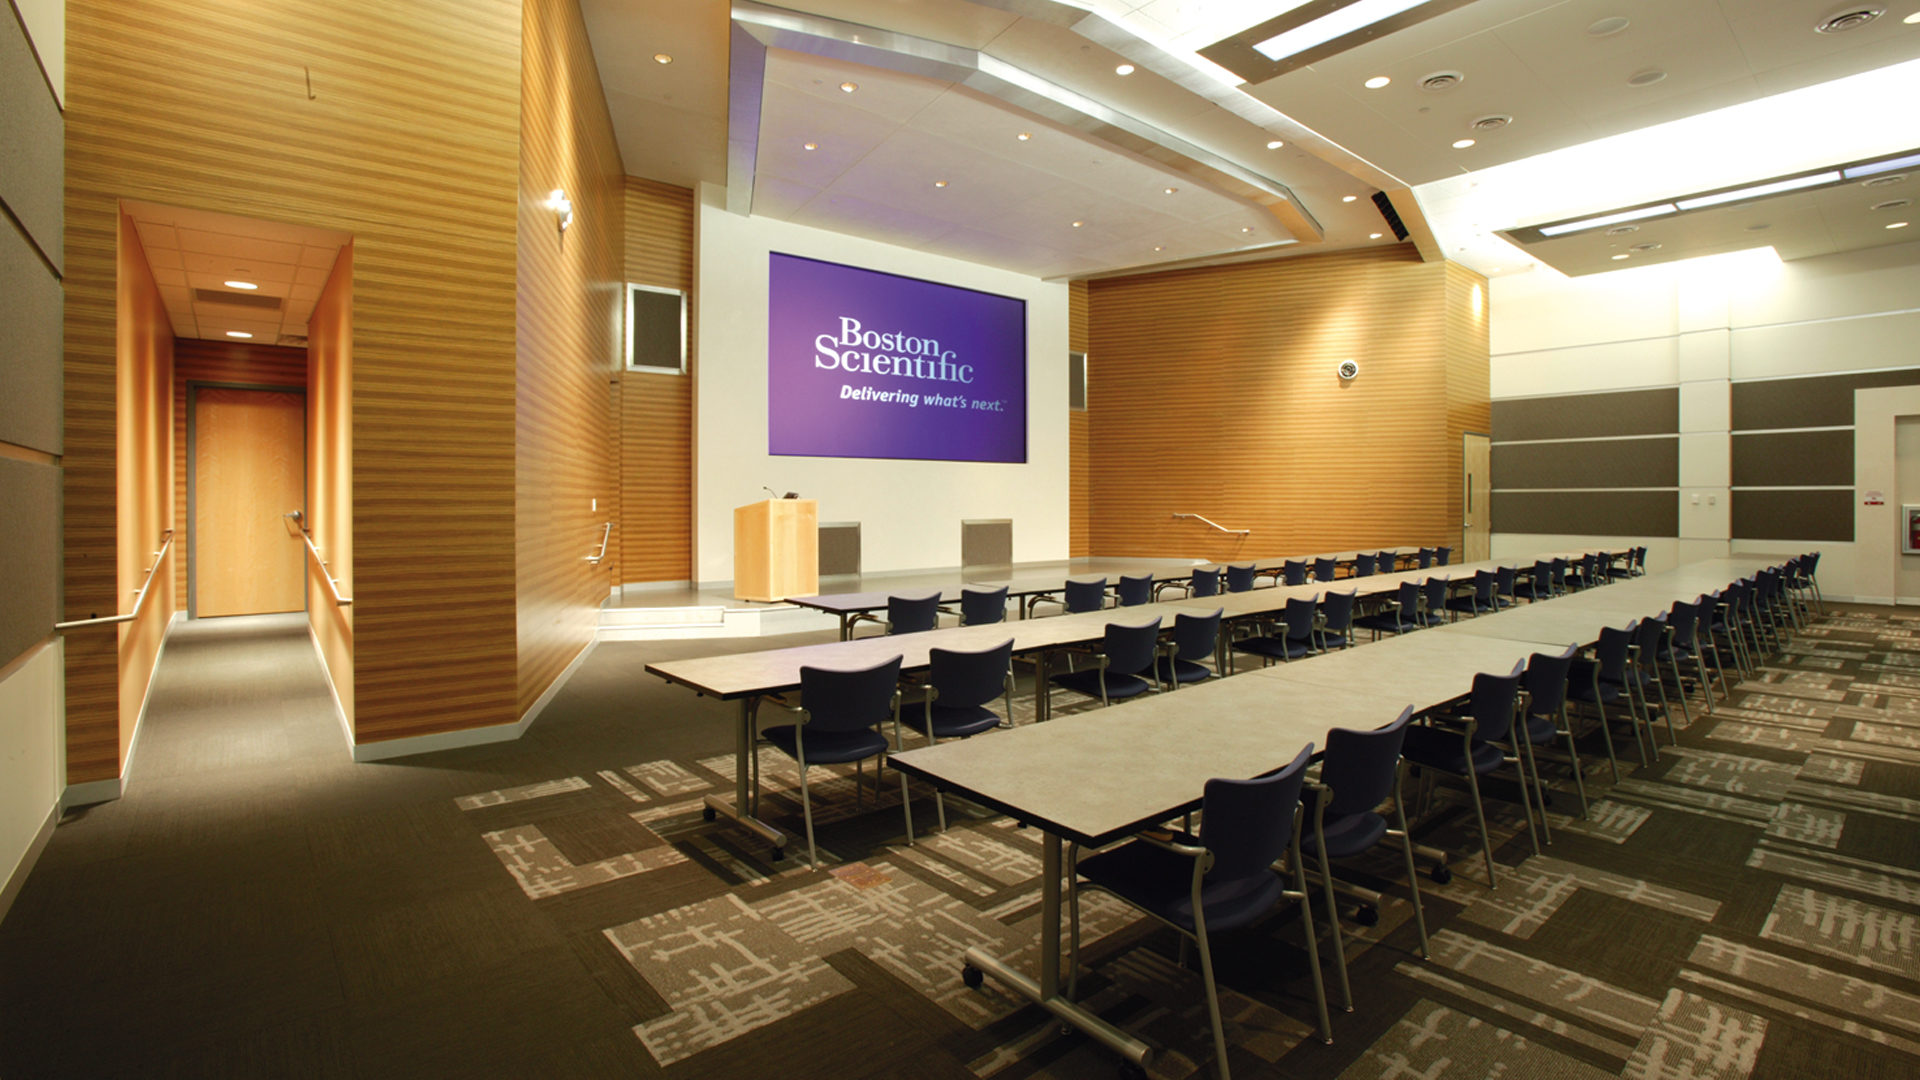 Boston Scientific Weaver Lake Phase III Expansion High Tech Manufacturing Interior Conference Room